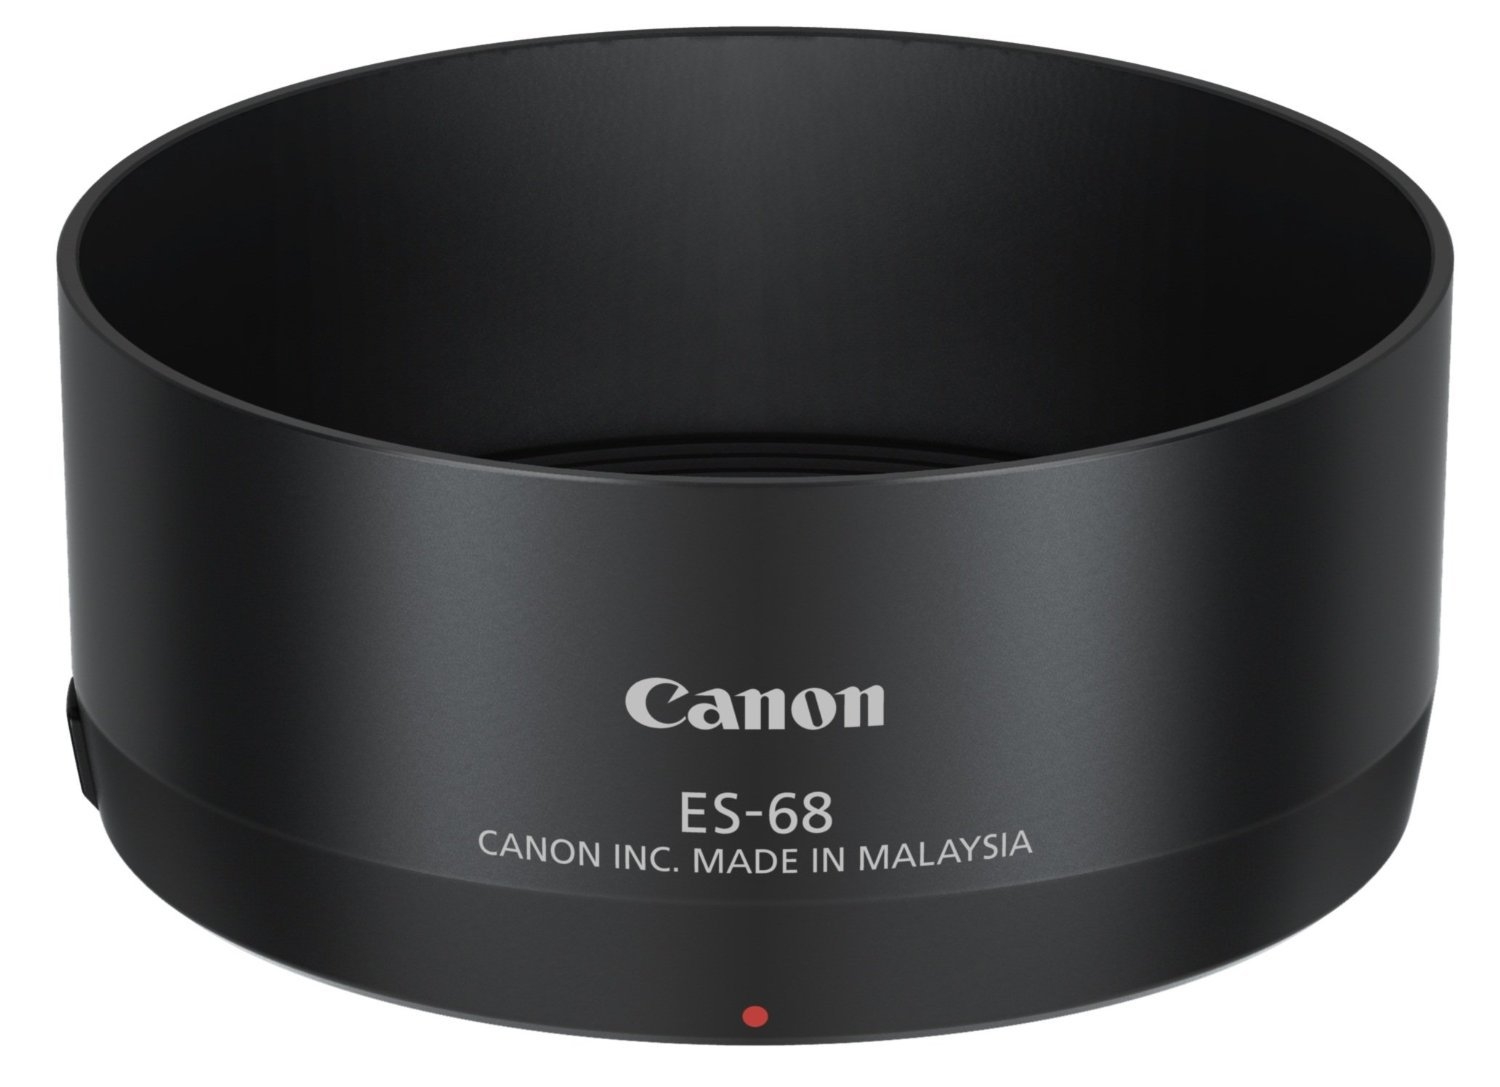 NEW Canon lens hood ES-68 for EF50mm F1.8 STM free